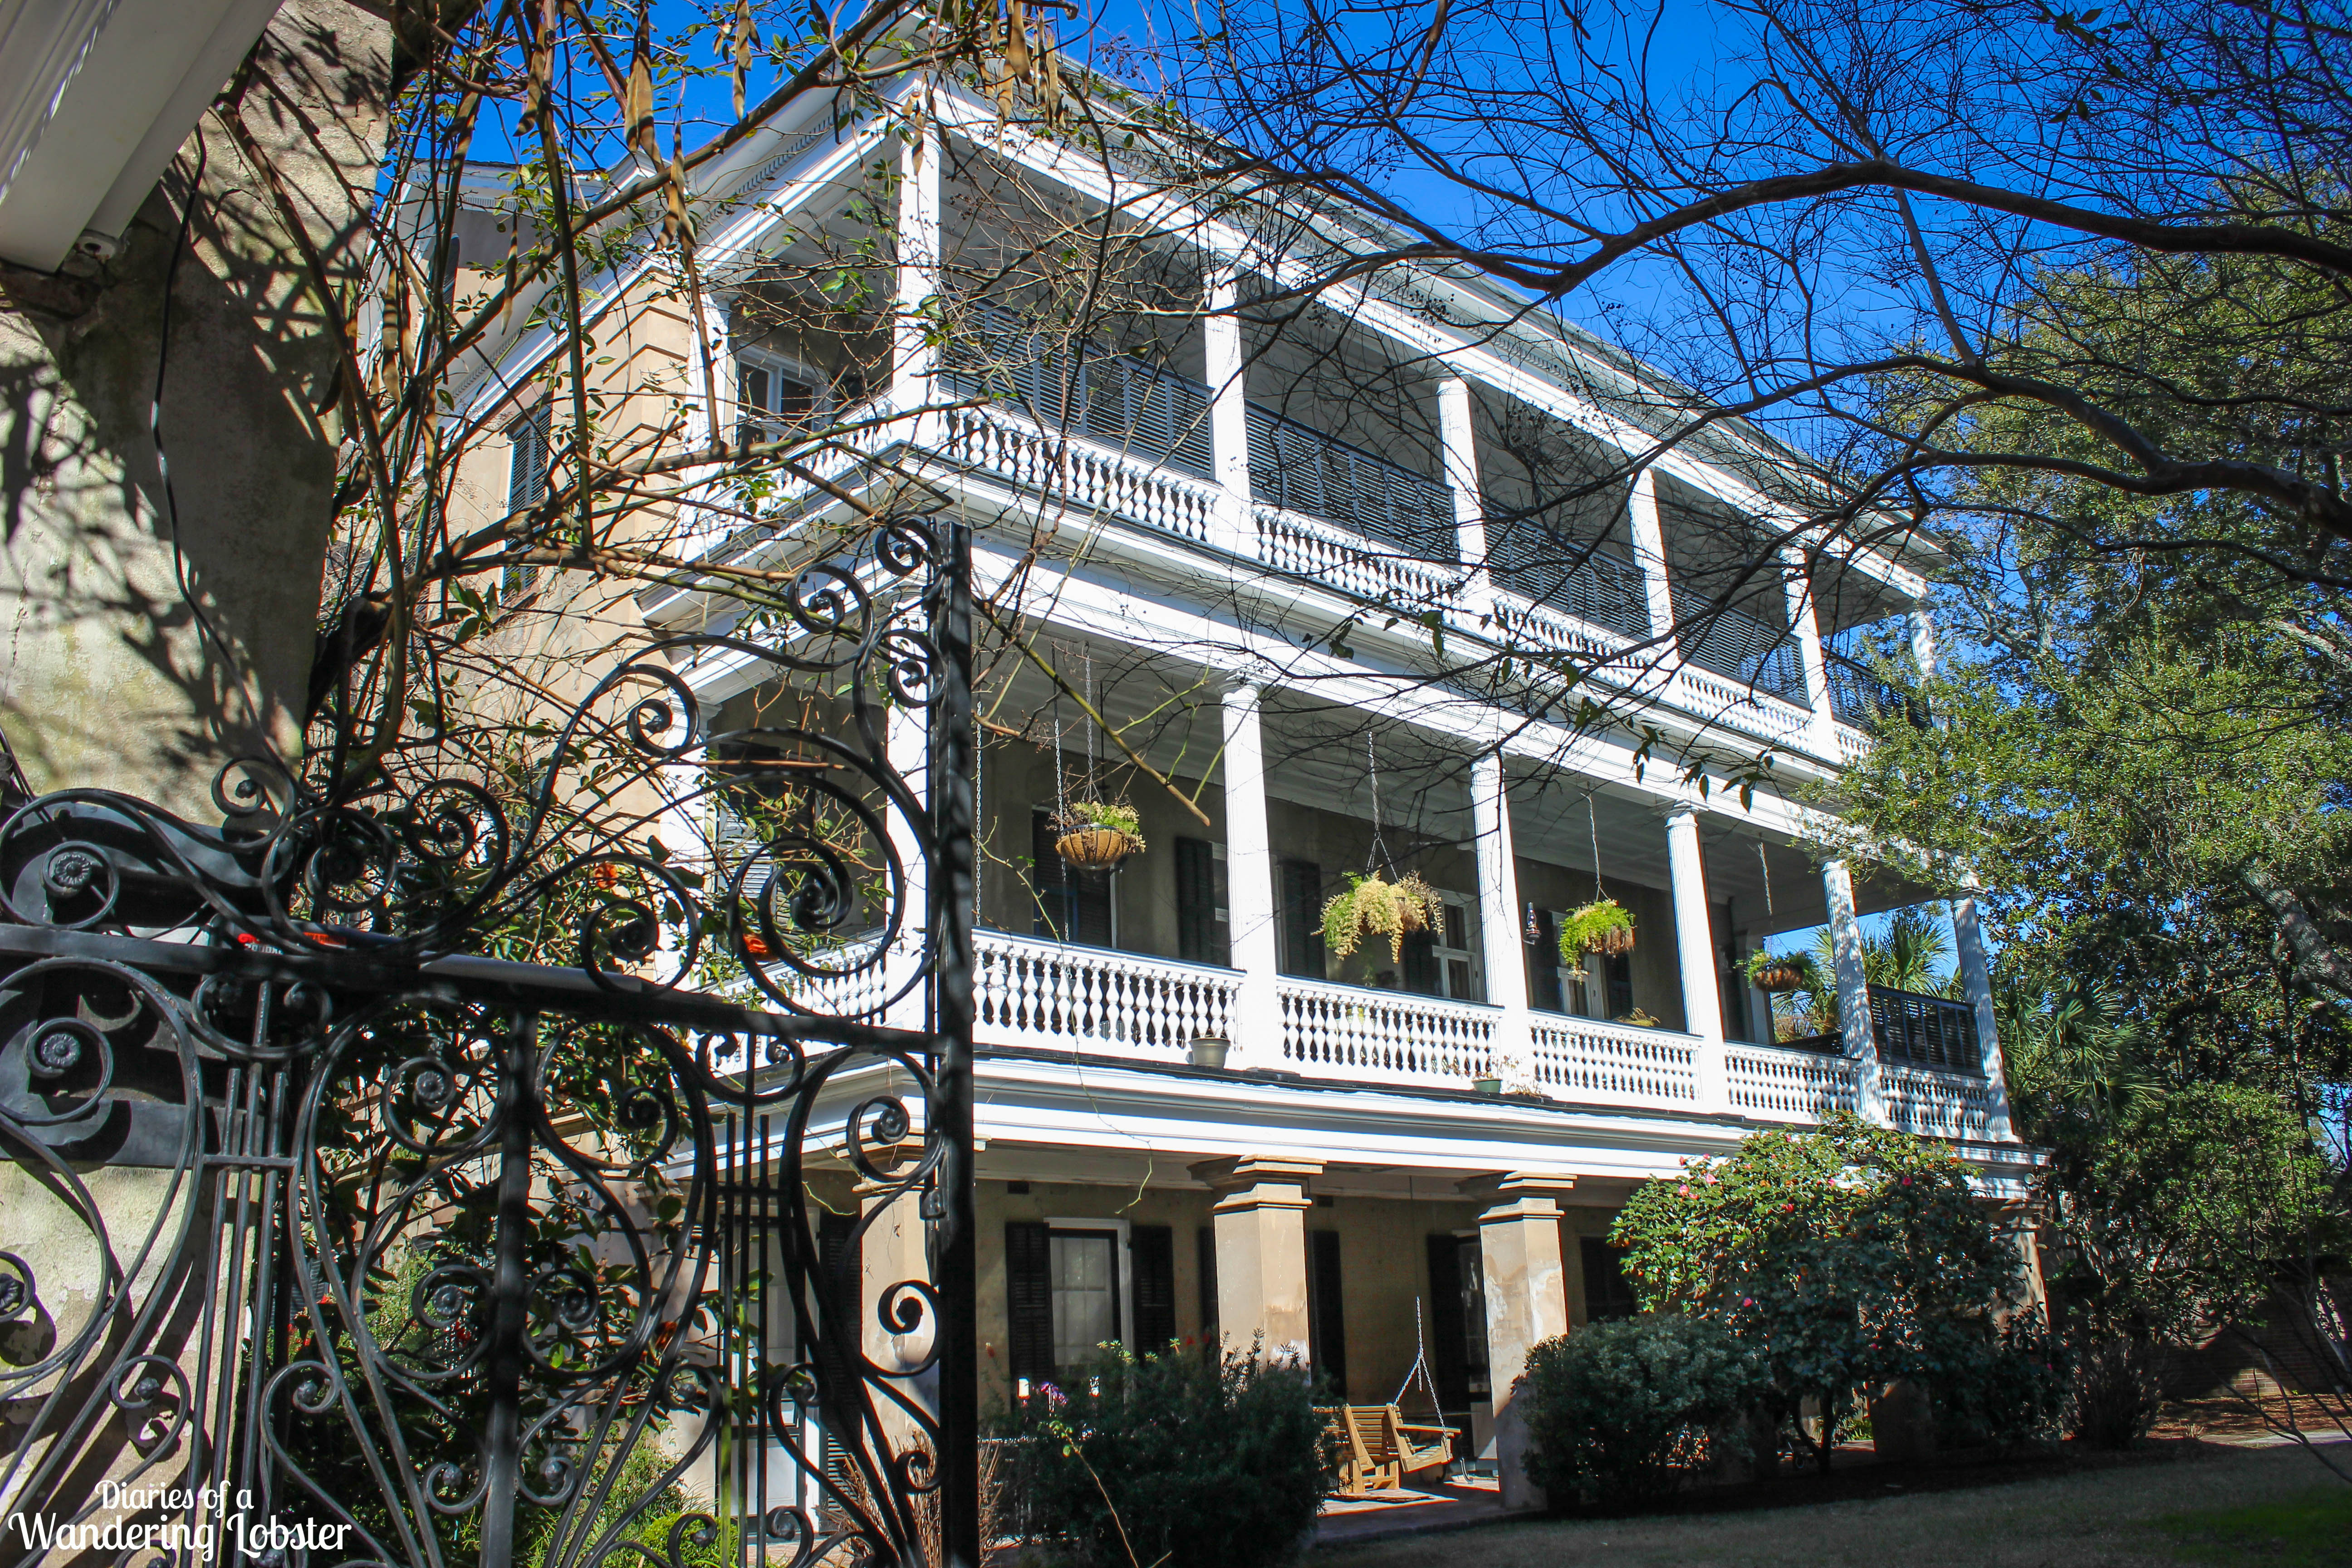 An Architecture Tour Of Charleston Diaries Of A Wandering Lobster